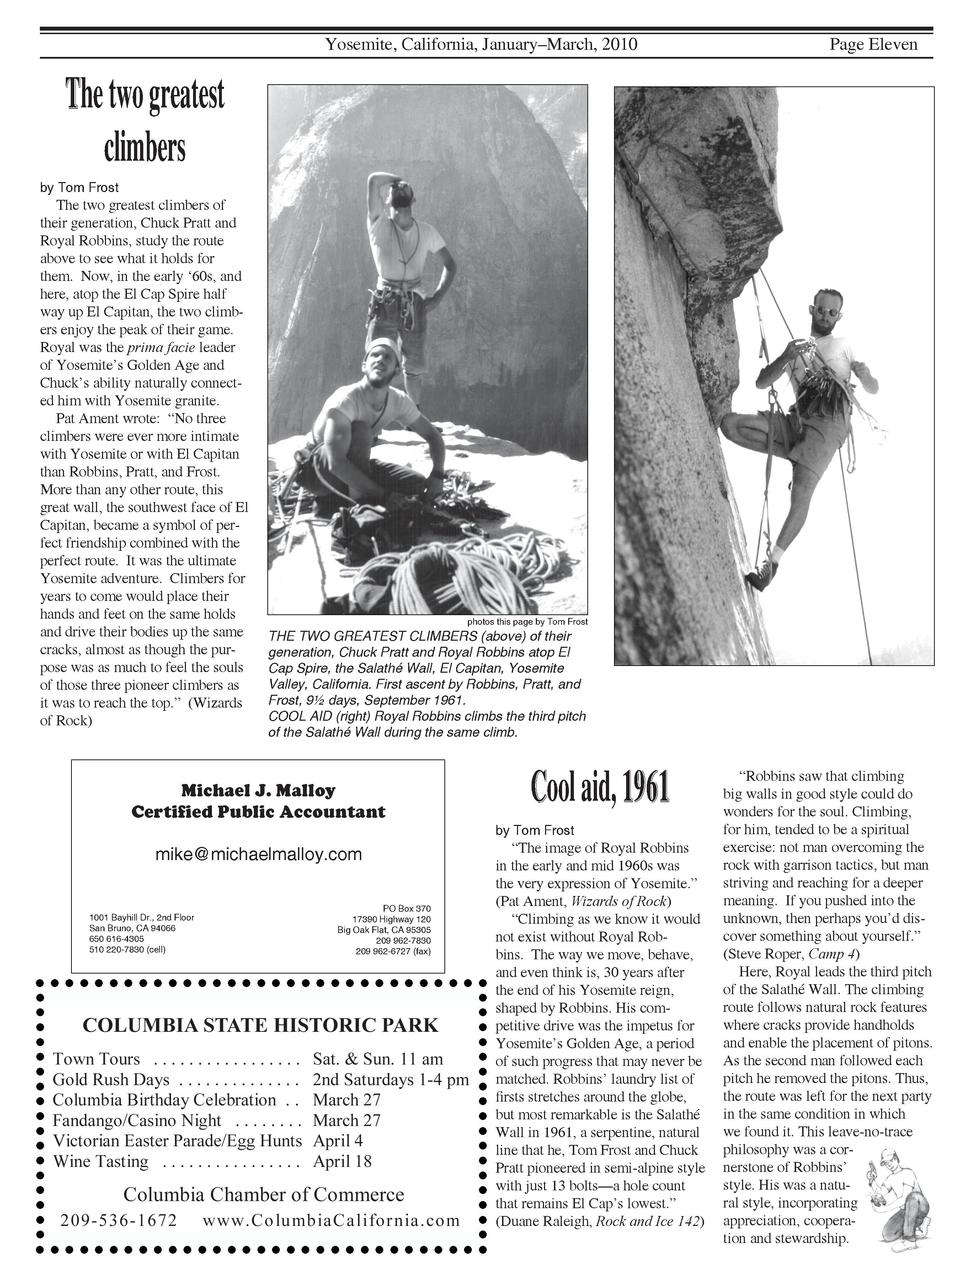 Yosemite, California, January   March, 2010  Page Eleven  The two greatest climbers by Tom Frost  The two greatest climber...